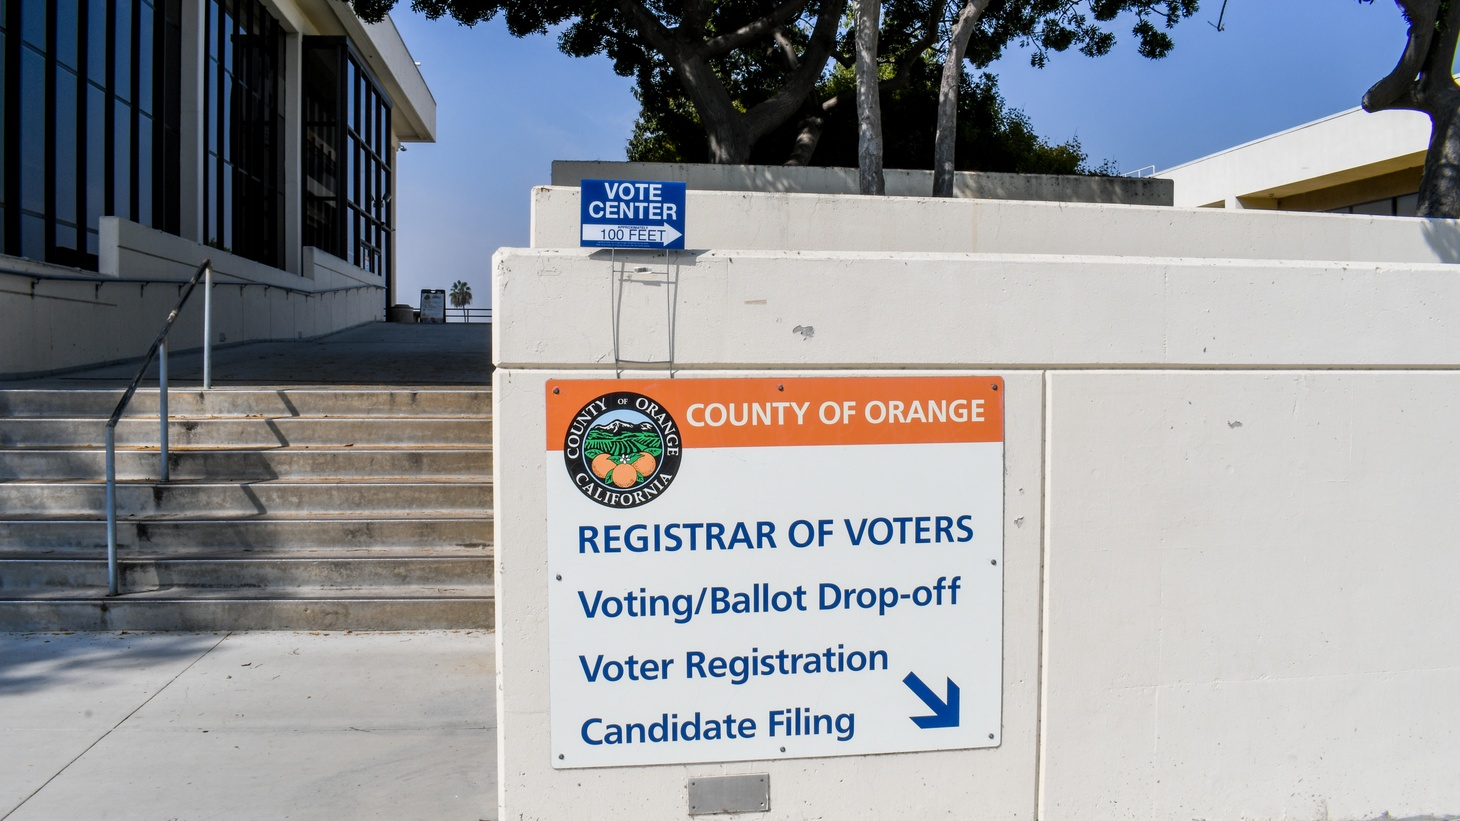 At the Orange County Registrar of Voters in Santa Ana, residents can cast and drop off their ballots and register to vote. October 5, 2020.